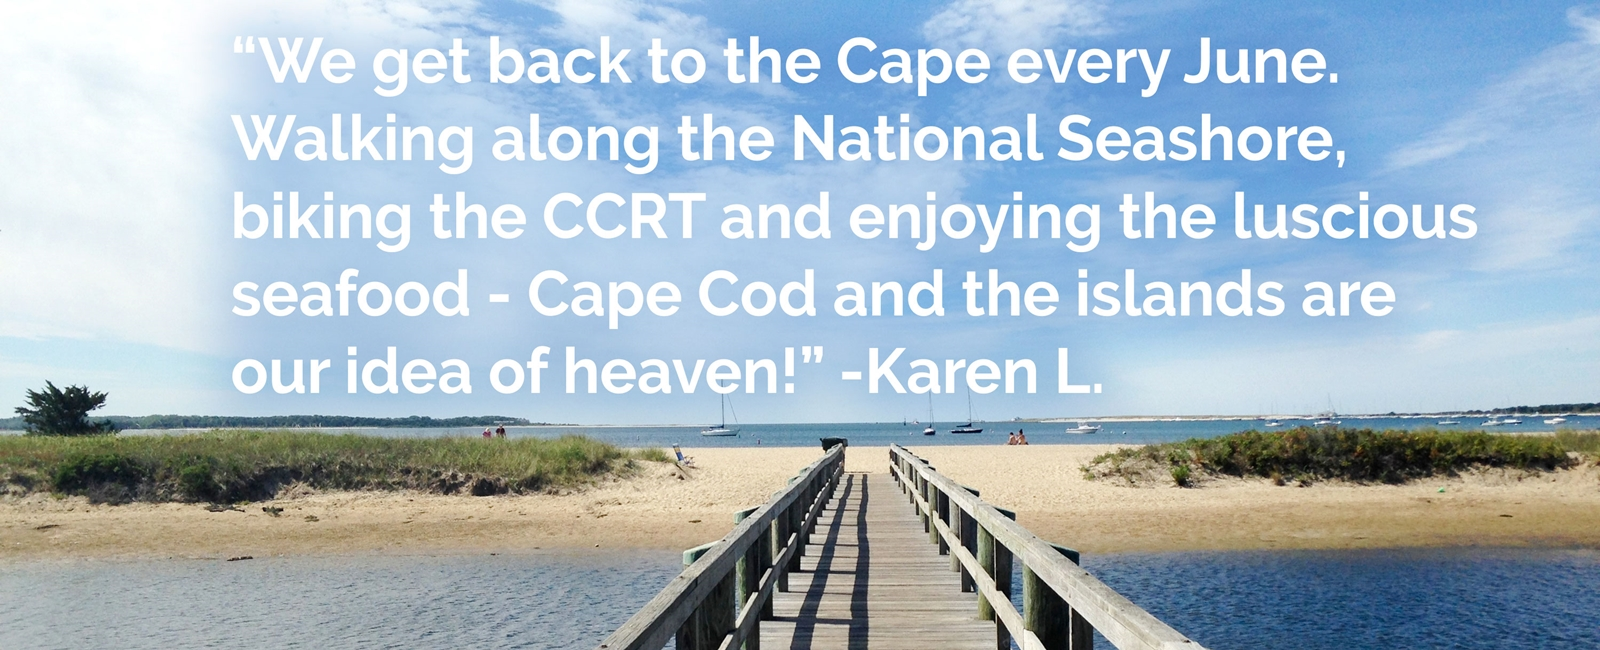 Family. Tradition. Great food. Beautiful sunsets. That relaxing deep breath we take when we cross the bridge. So many reasons to Get Back to the Cape and Islands.